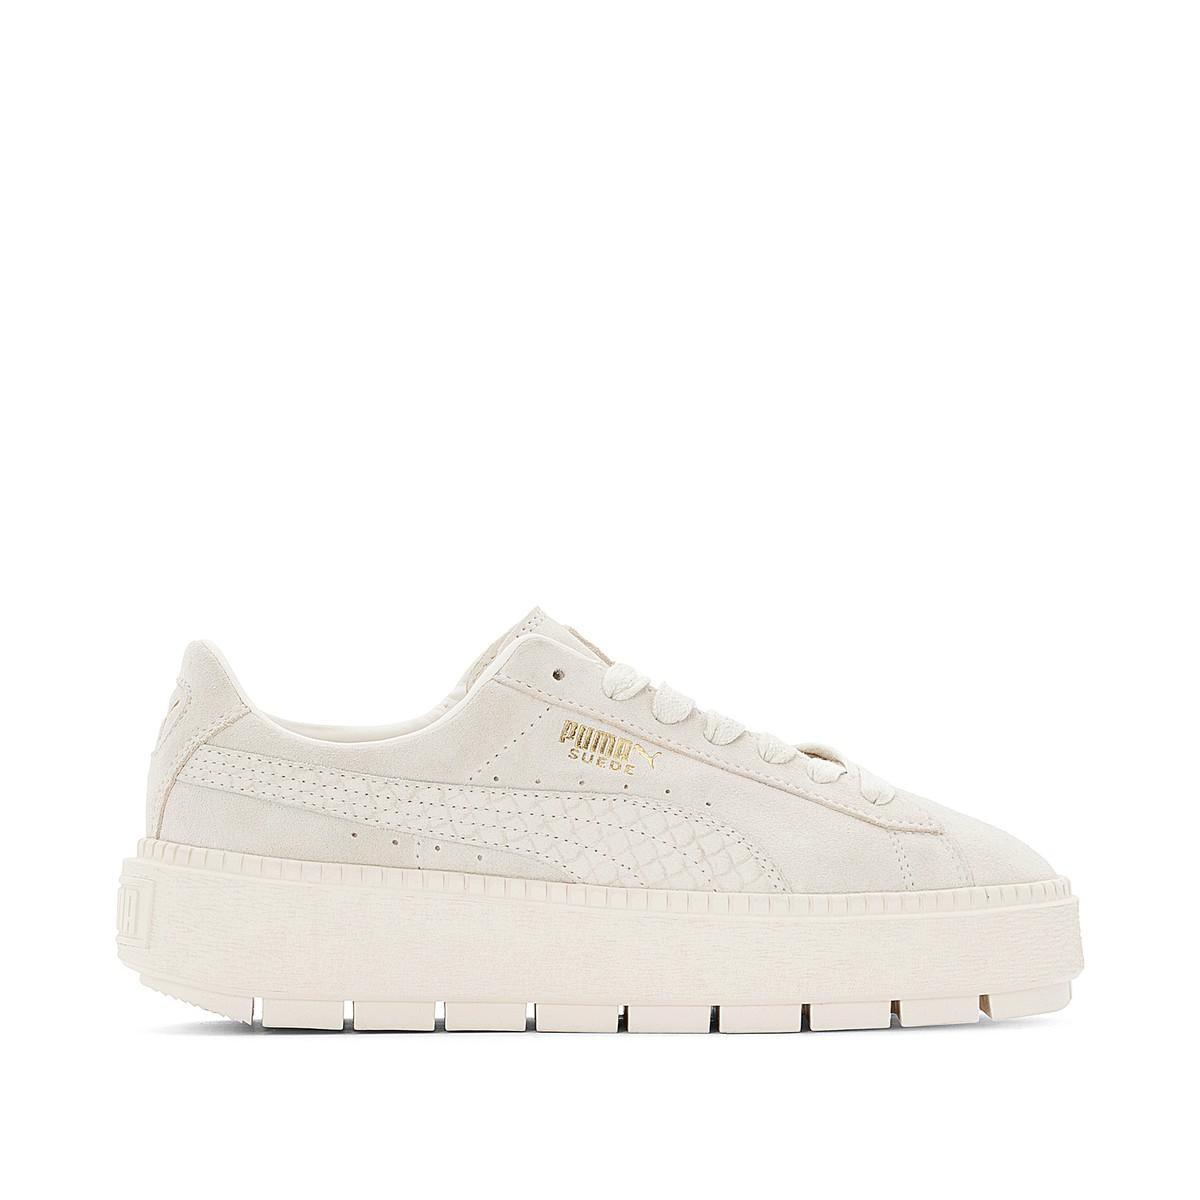 8a1532daf3 Lyst - Puma Suede Platform Trace Animal Wn 2 Trainers in Natural